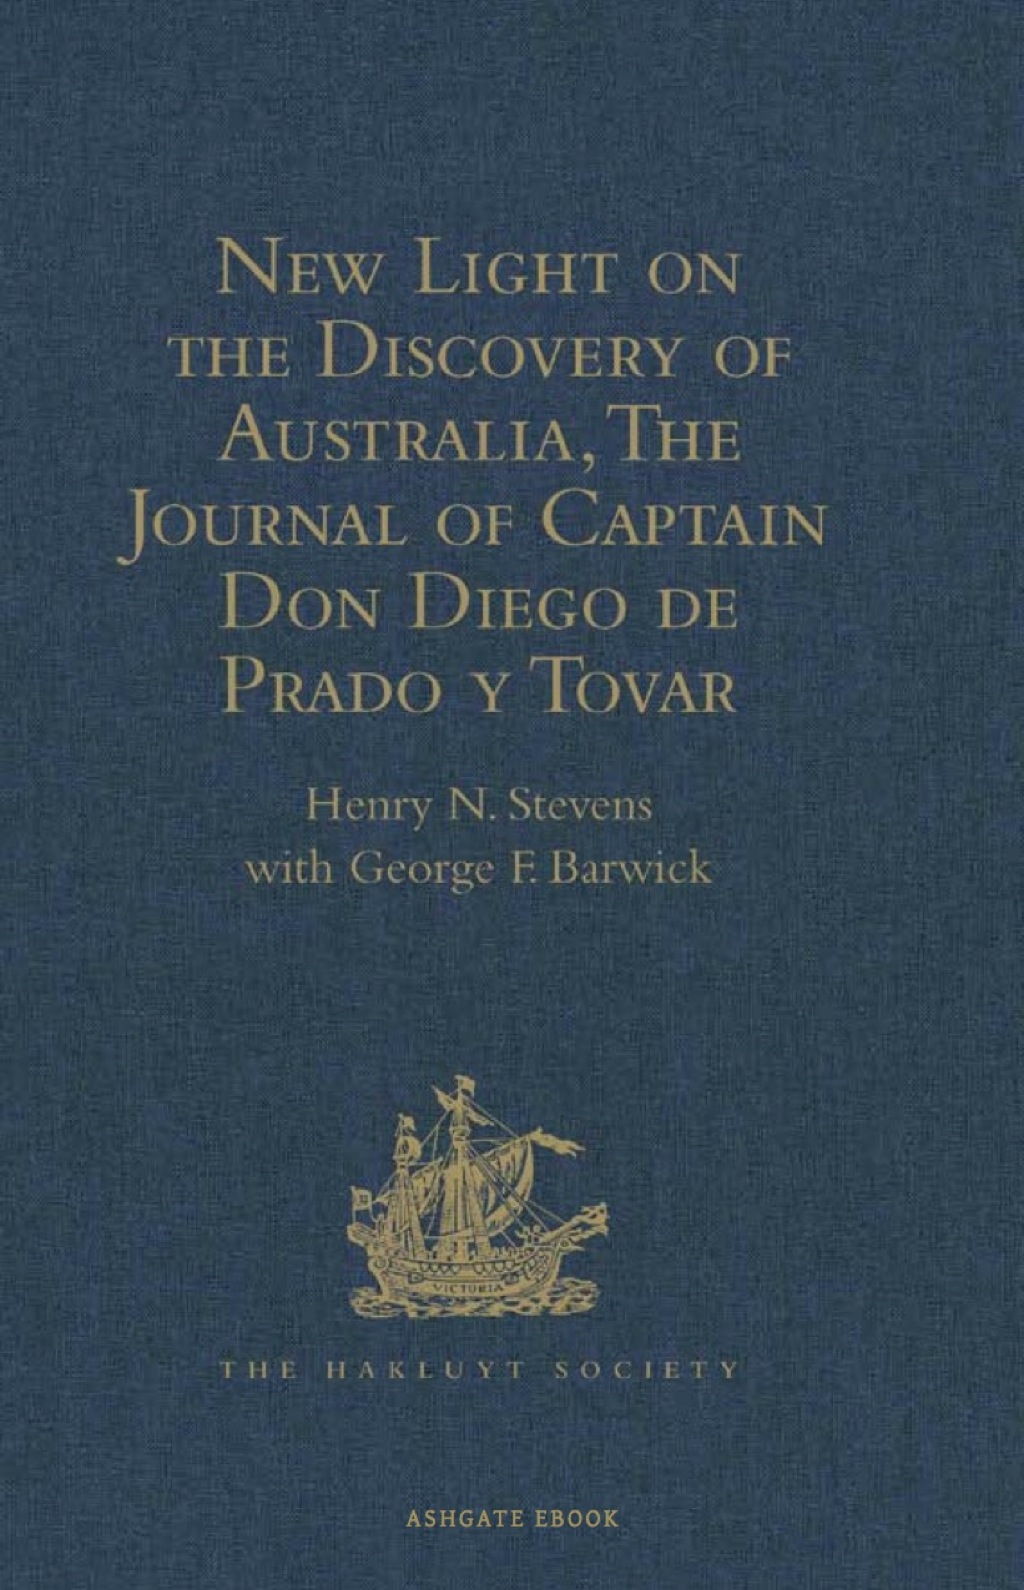 New Light on the Discovery of Australia, as Revealed by the Journal of Captain Don Diego de Prado y Tovar (ebook) eBooks